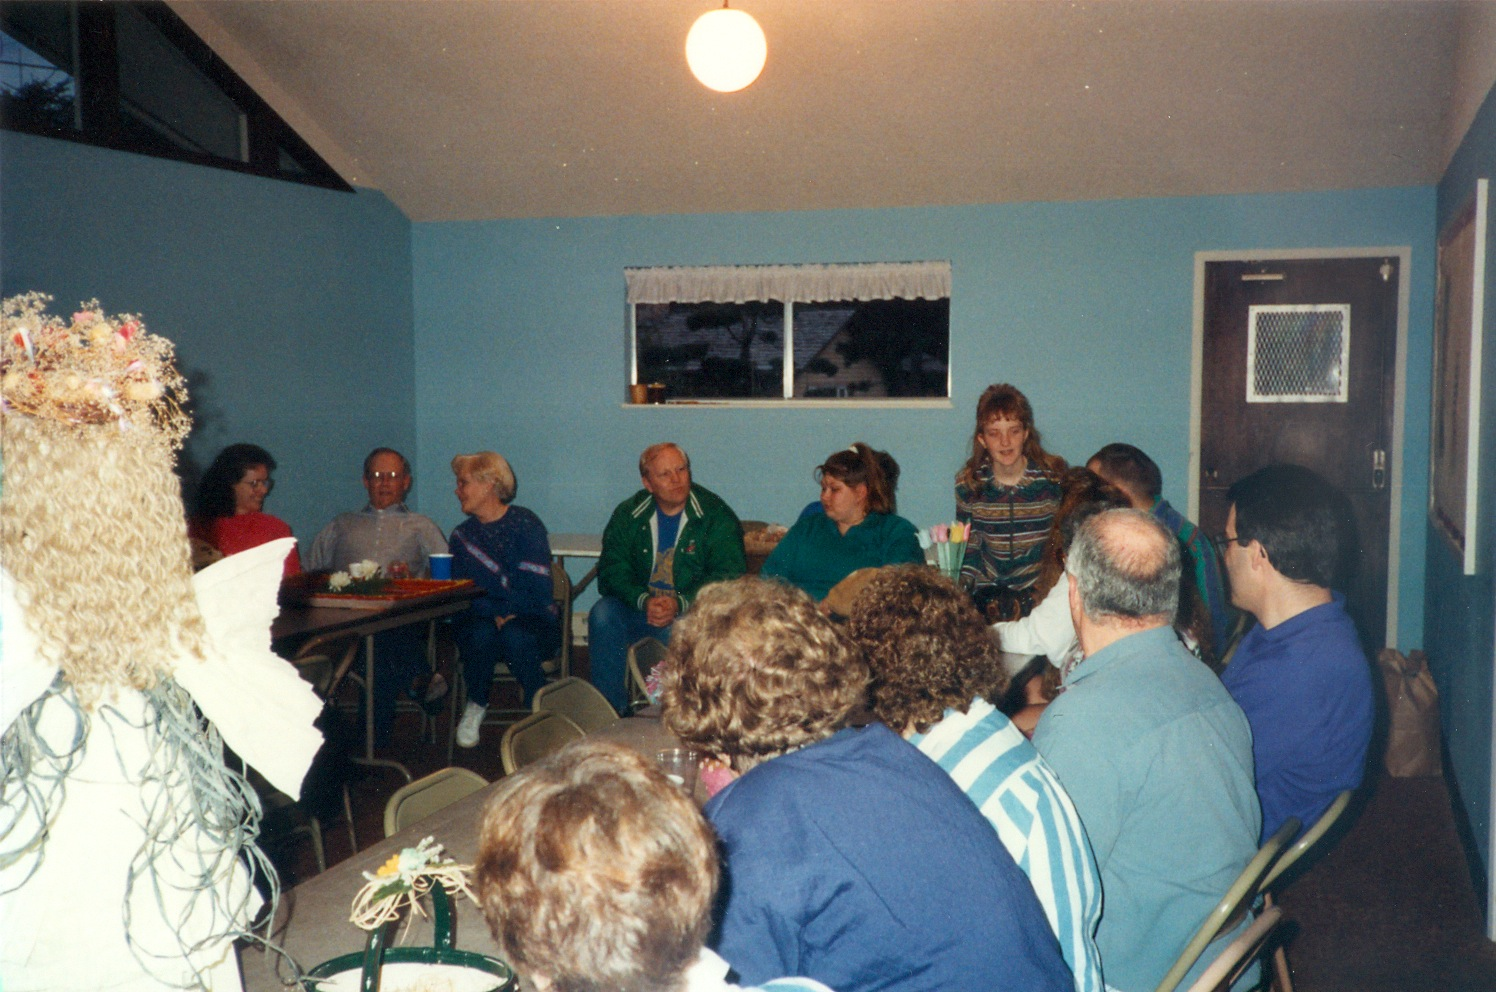 Scanned Image 121630012